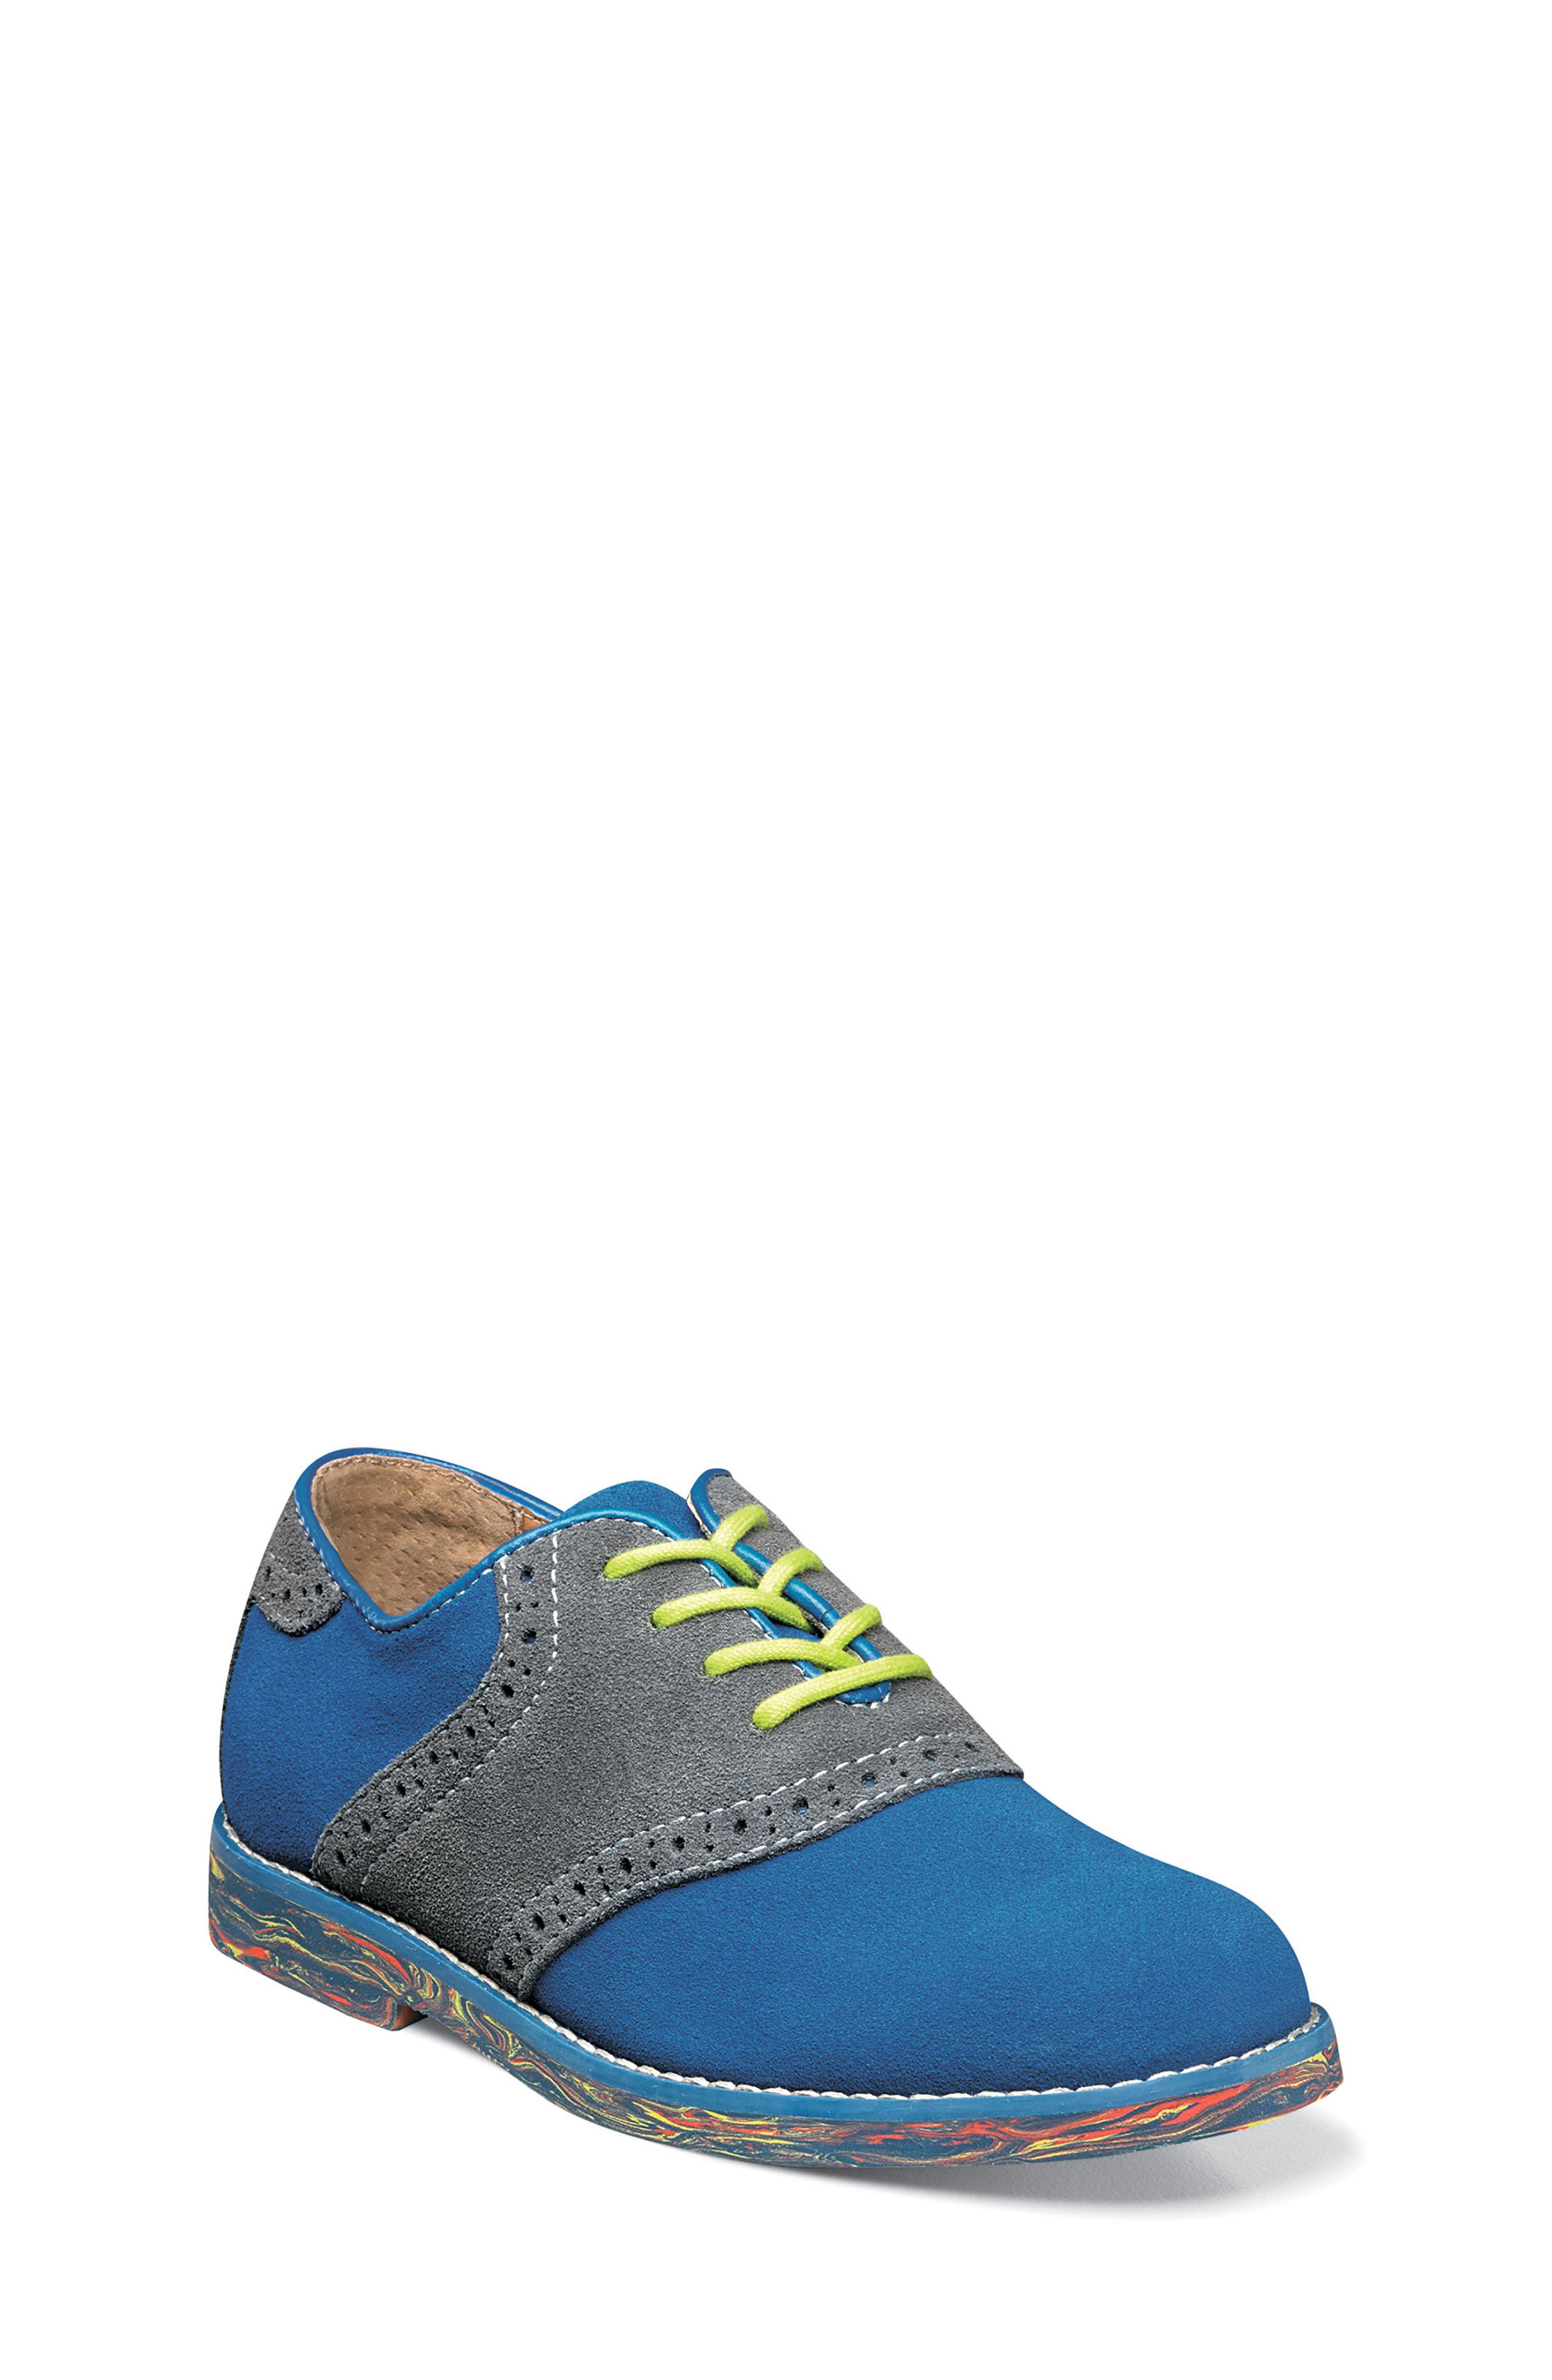 Florsheim 'Kennett Jr. II' Saddle Shoe (Toddler, Little Kid & Big Kid)